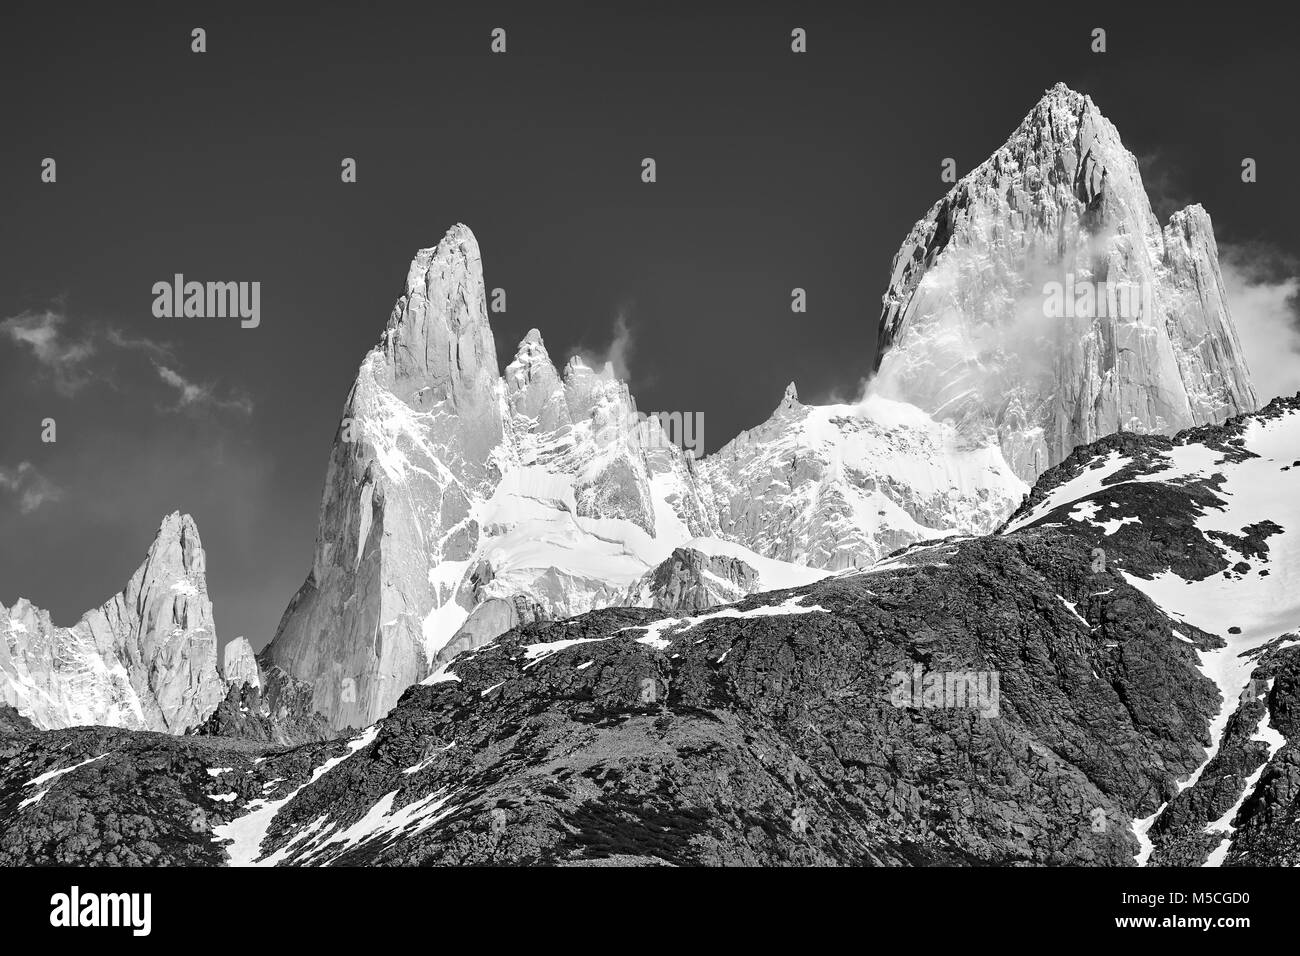 Black and white picture of the Fitz Roy Mountain Range, Los Glaciares National Park, Argentina. - Stock Image